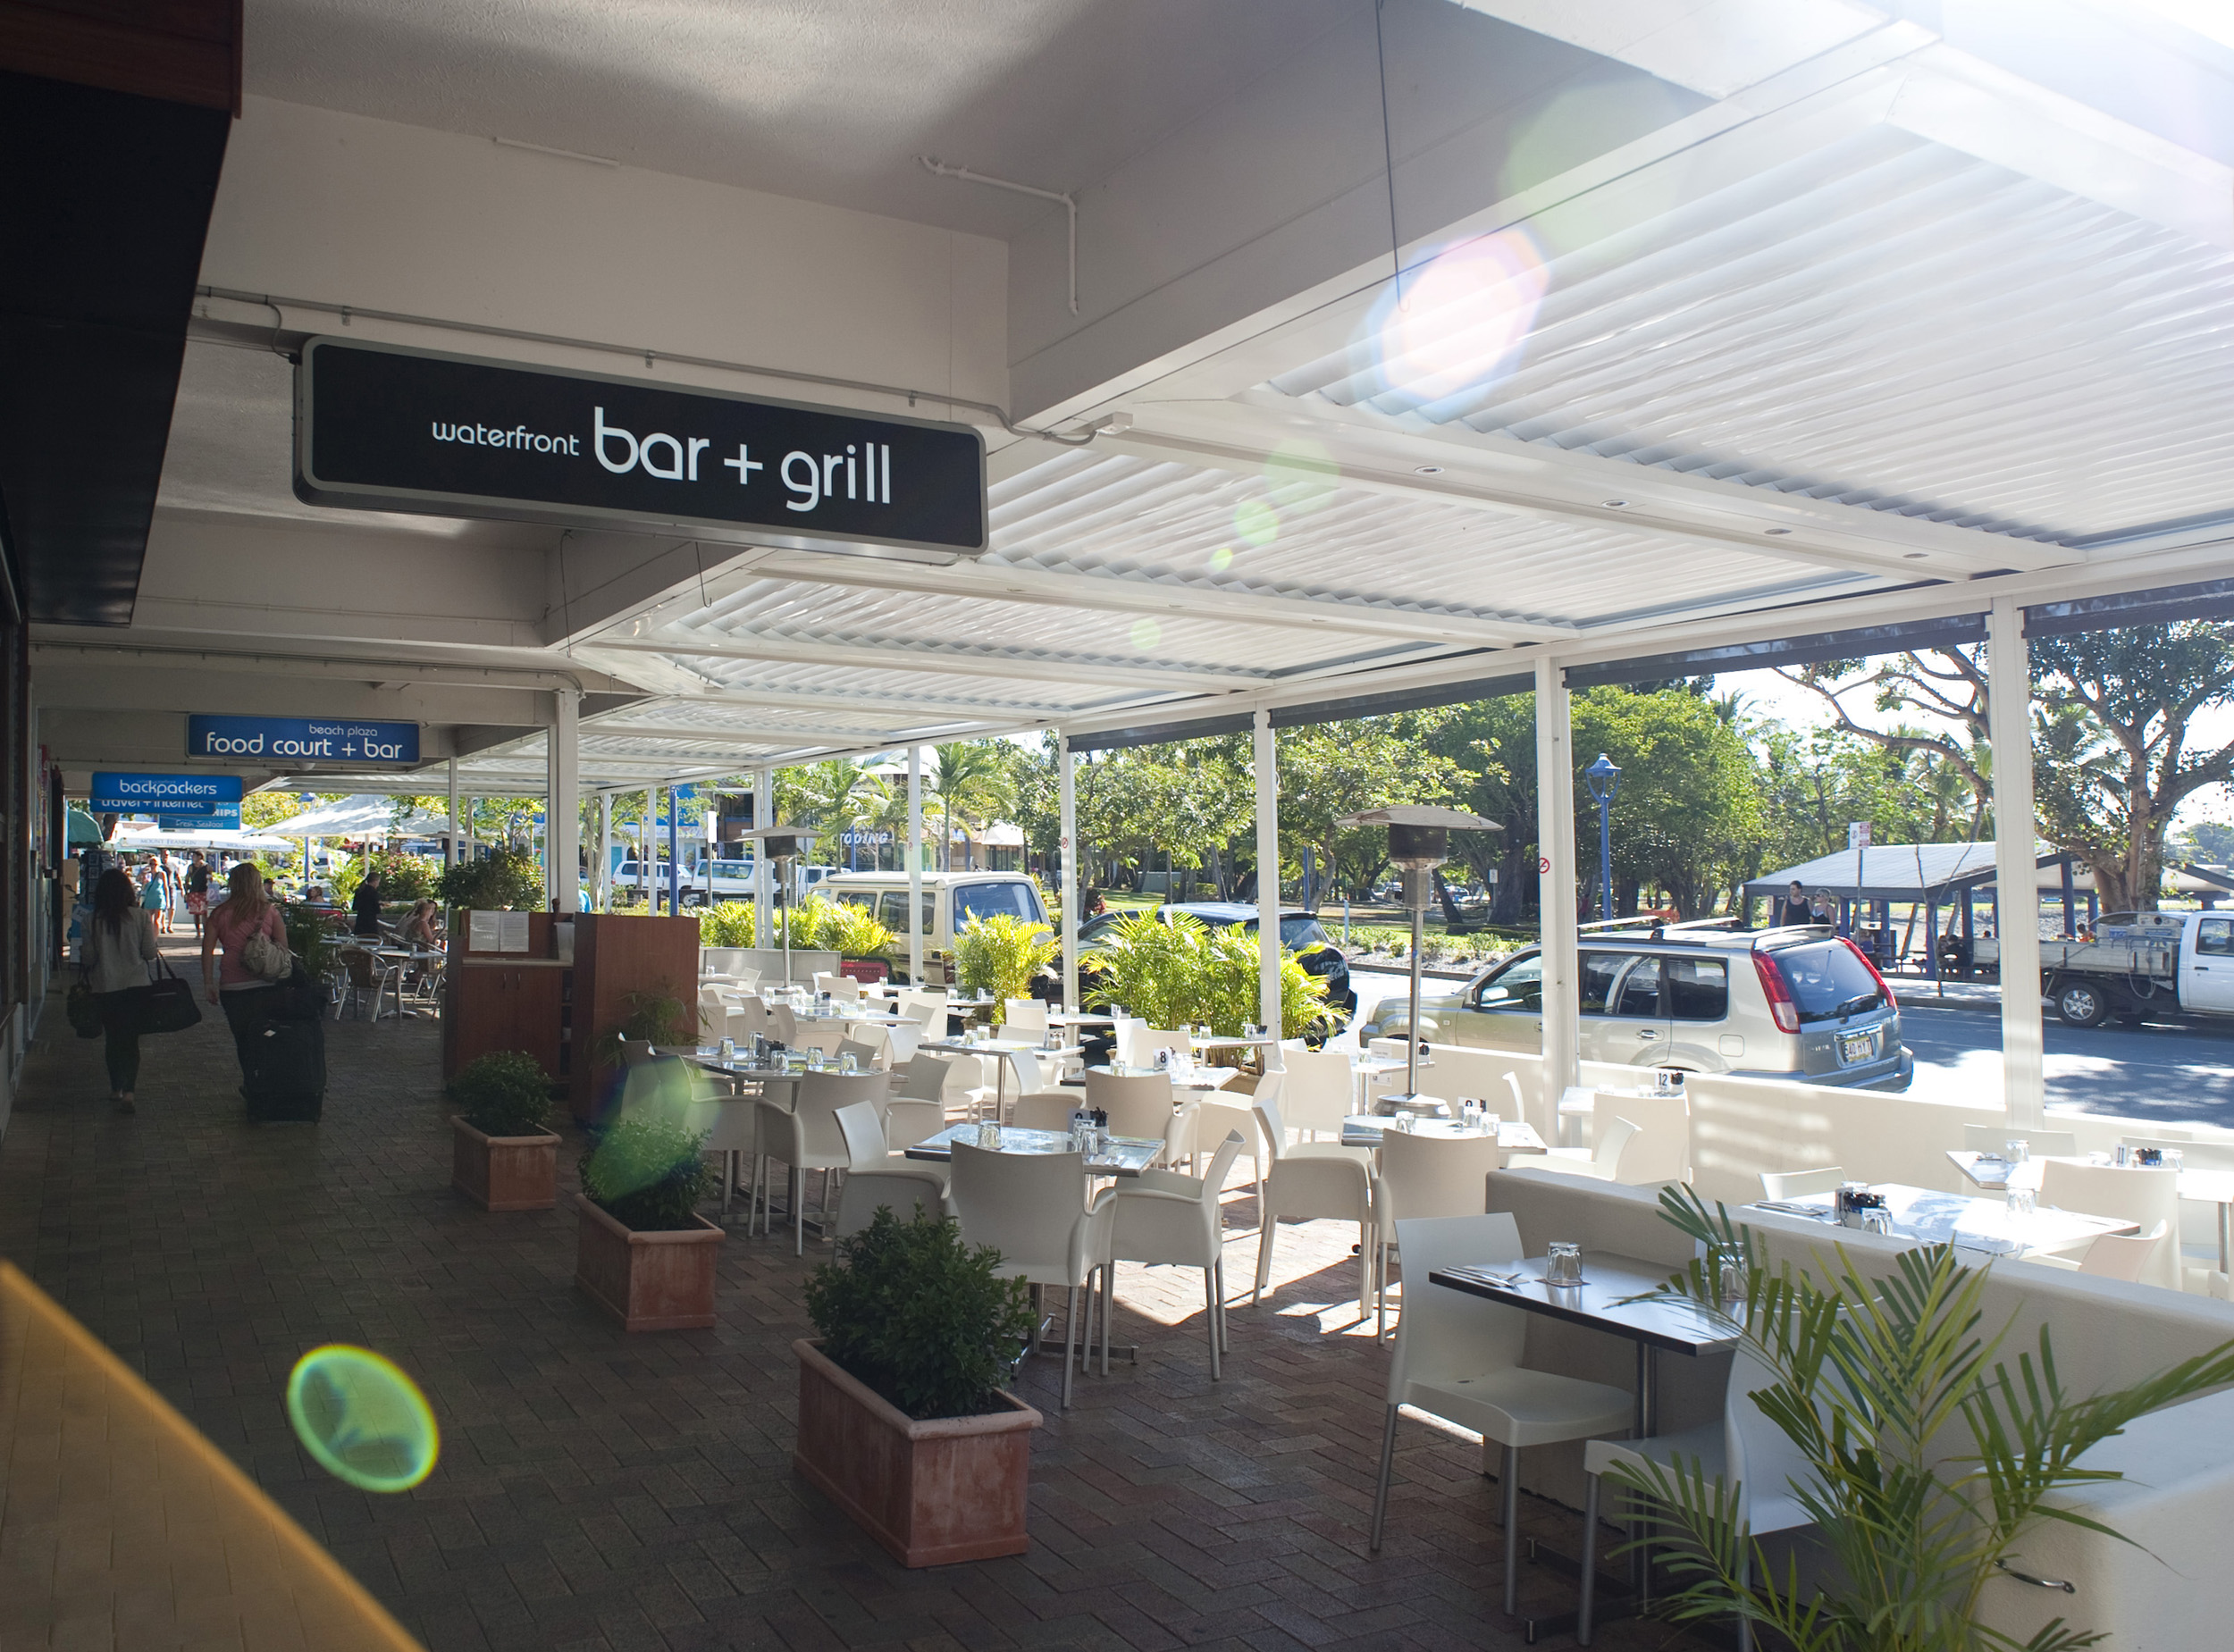 Airlie esplanade dining with an open-air restaurant on a covered porch overlooking a street in Airlie Beach, Queensland, Australia